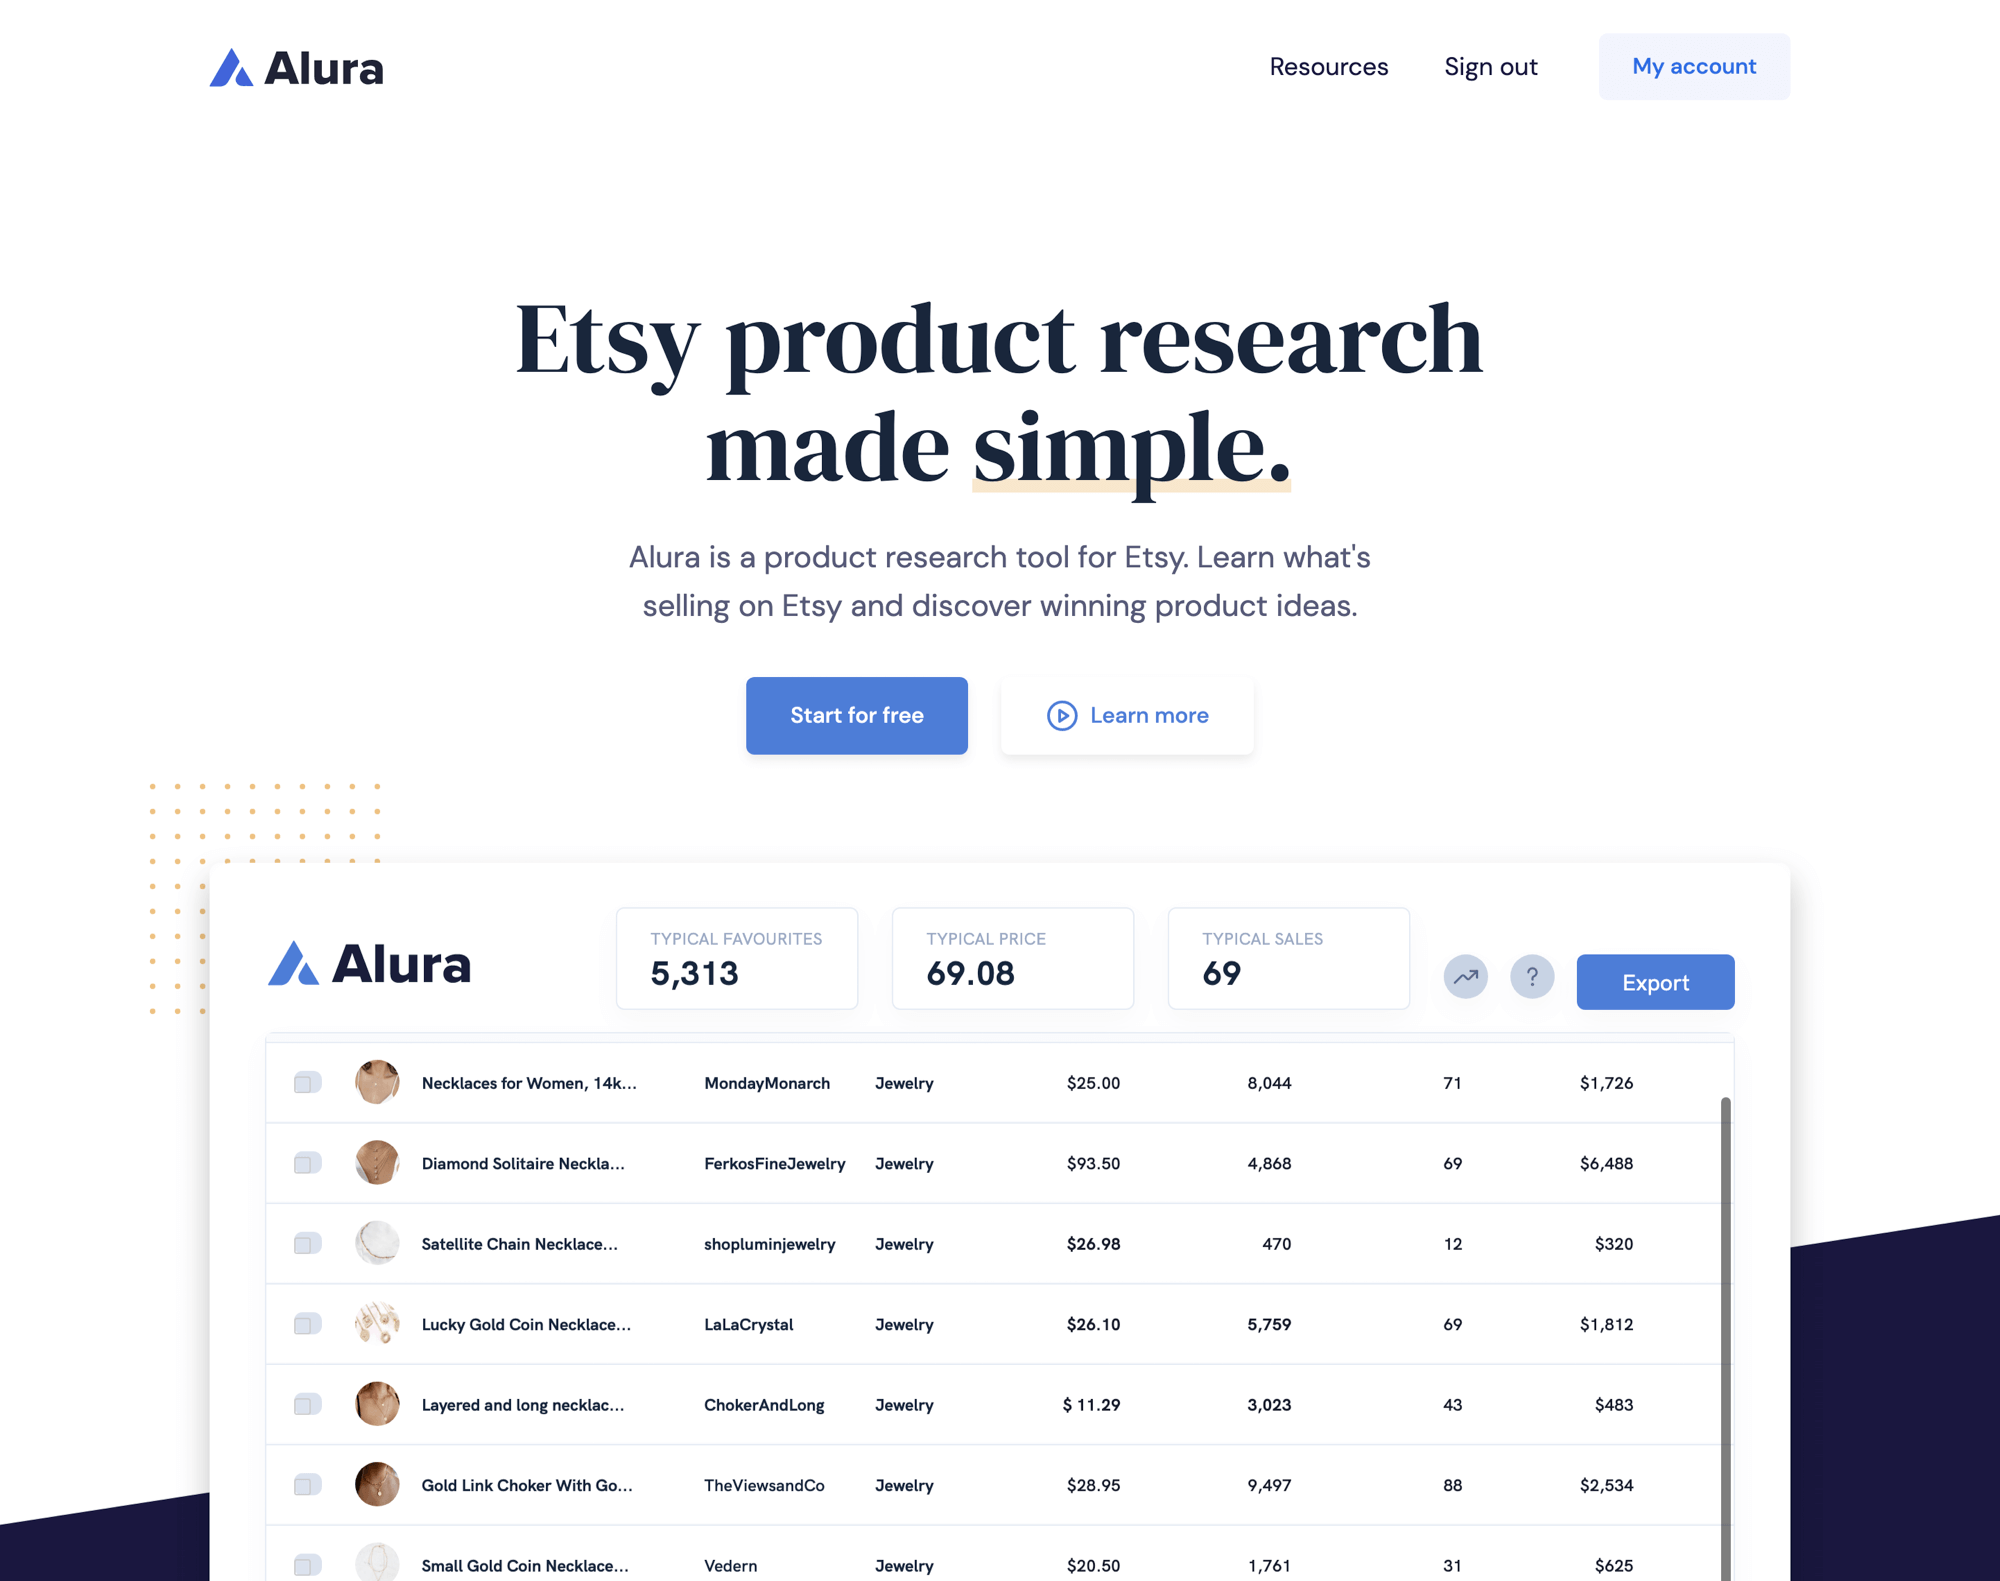 Alura homepage - Etsy product reach made simple. Alura is a website with user accounts and a chrome extension with payments.